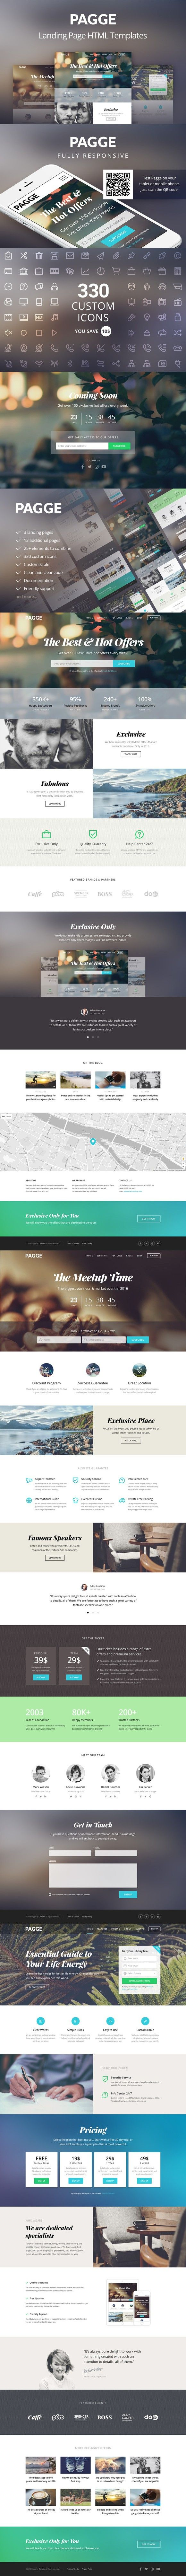 513 best HTML/CSS Themes images on Pinterest | Templates, First page ...